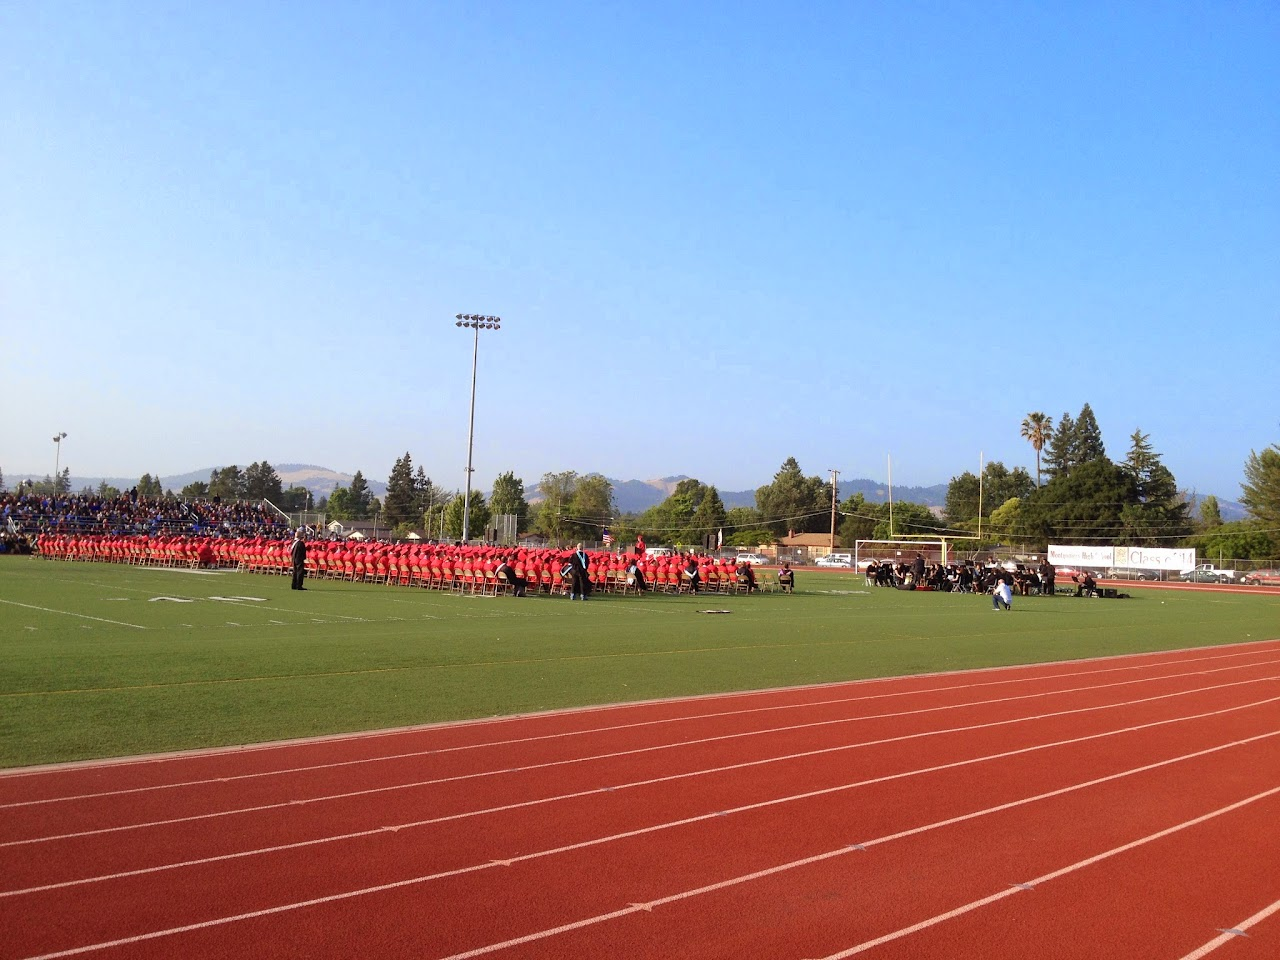 Courtneys Graduation Montgomery High May 2014 - Courtney_graduation_MHS_20140530_27.JPG